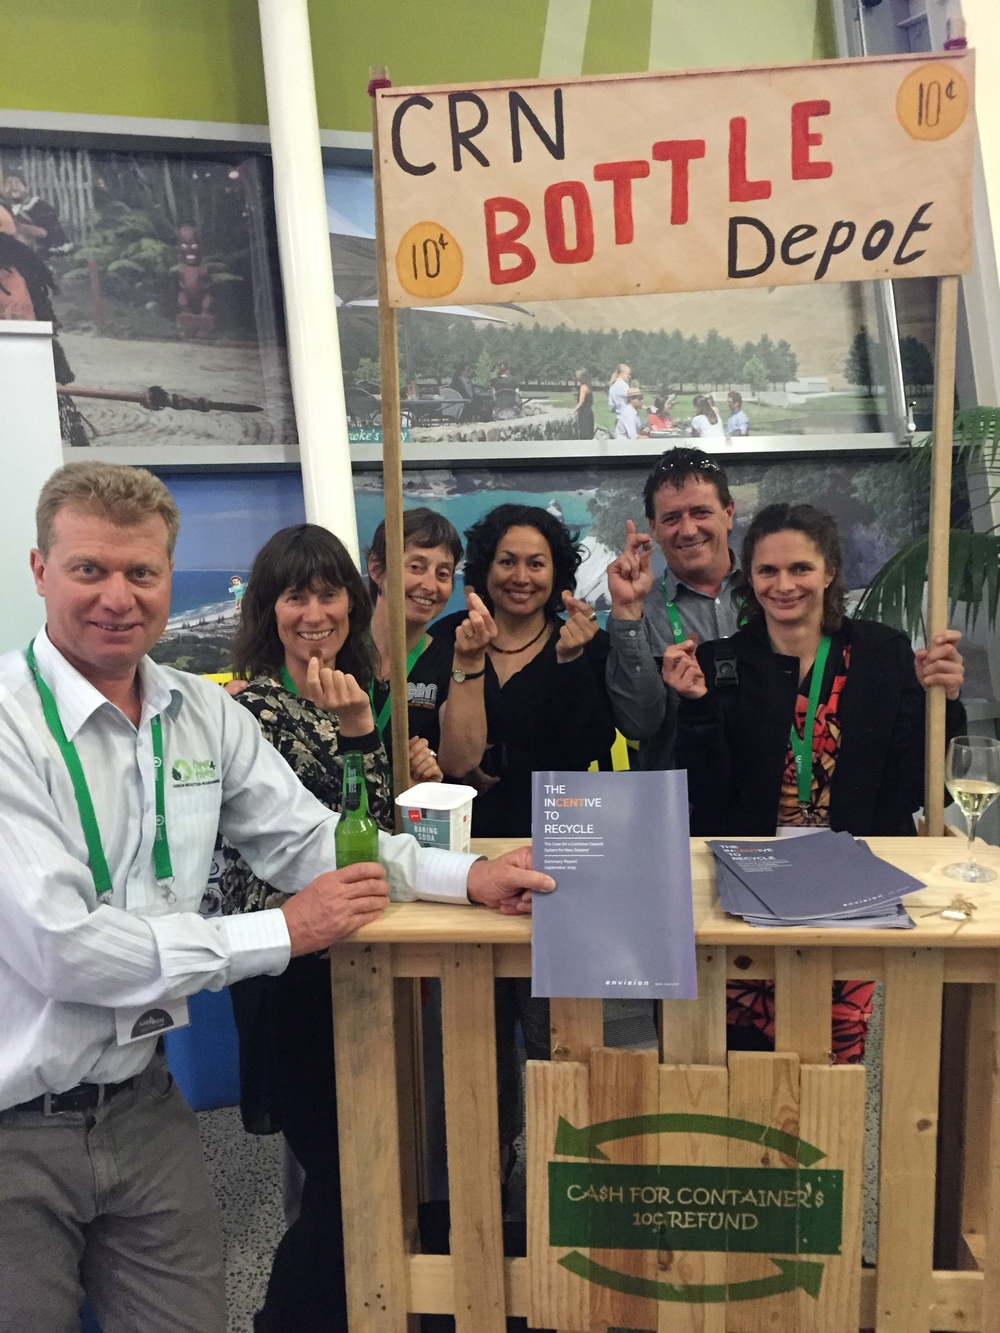 The CRN Bottle Depot in action again, this time at the 2015 Waste MINZ Conference